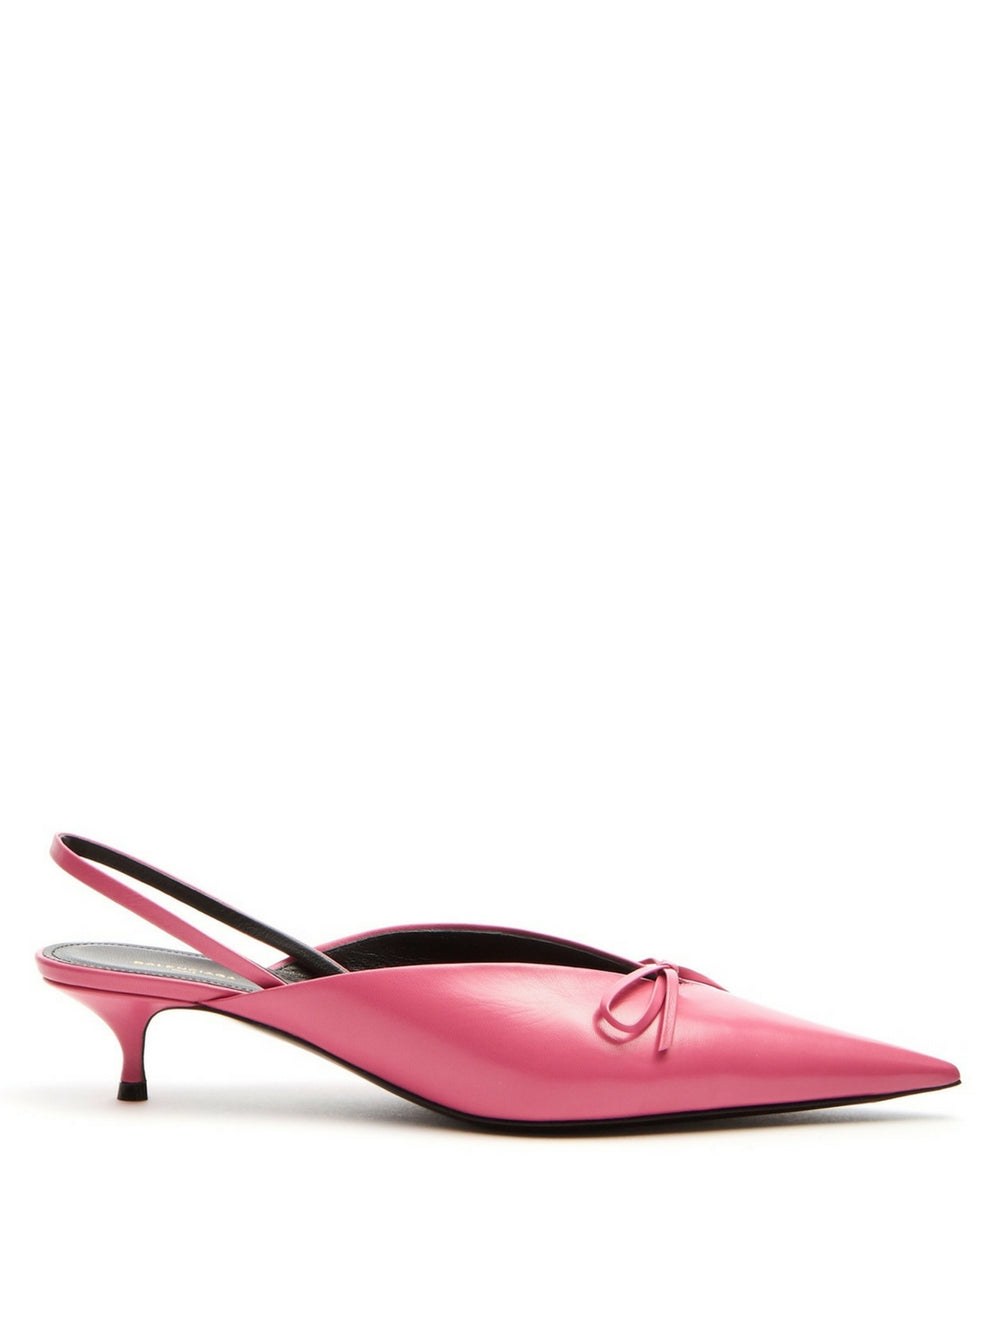 Balenciaga Knife Slingback Pumps